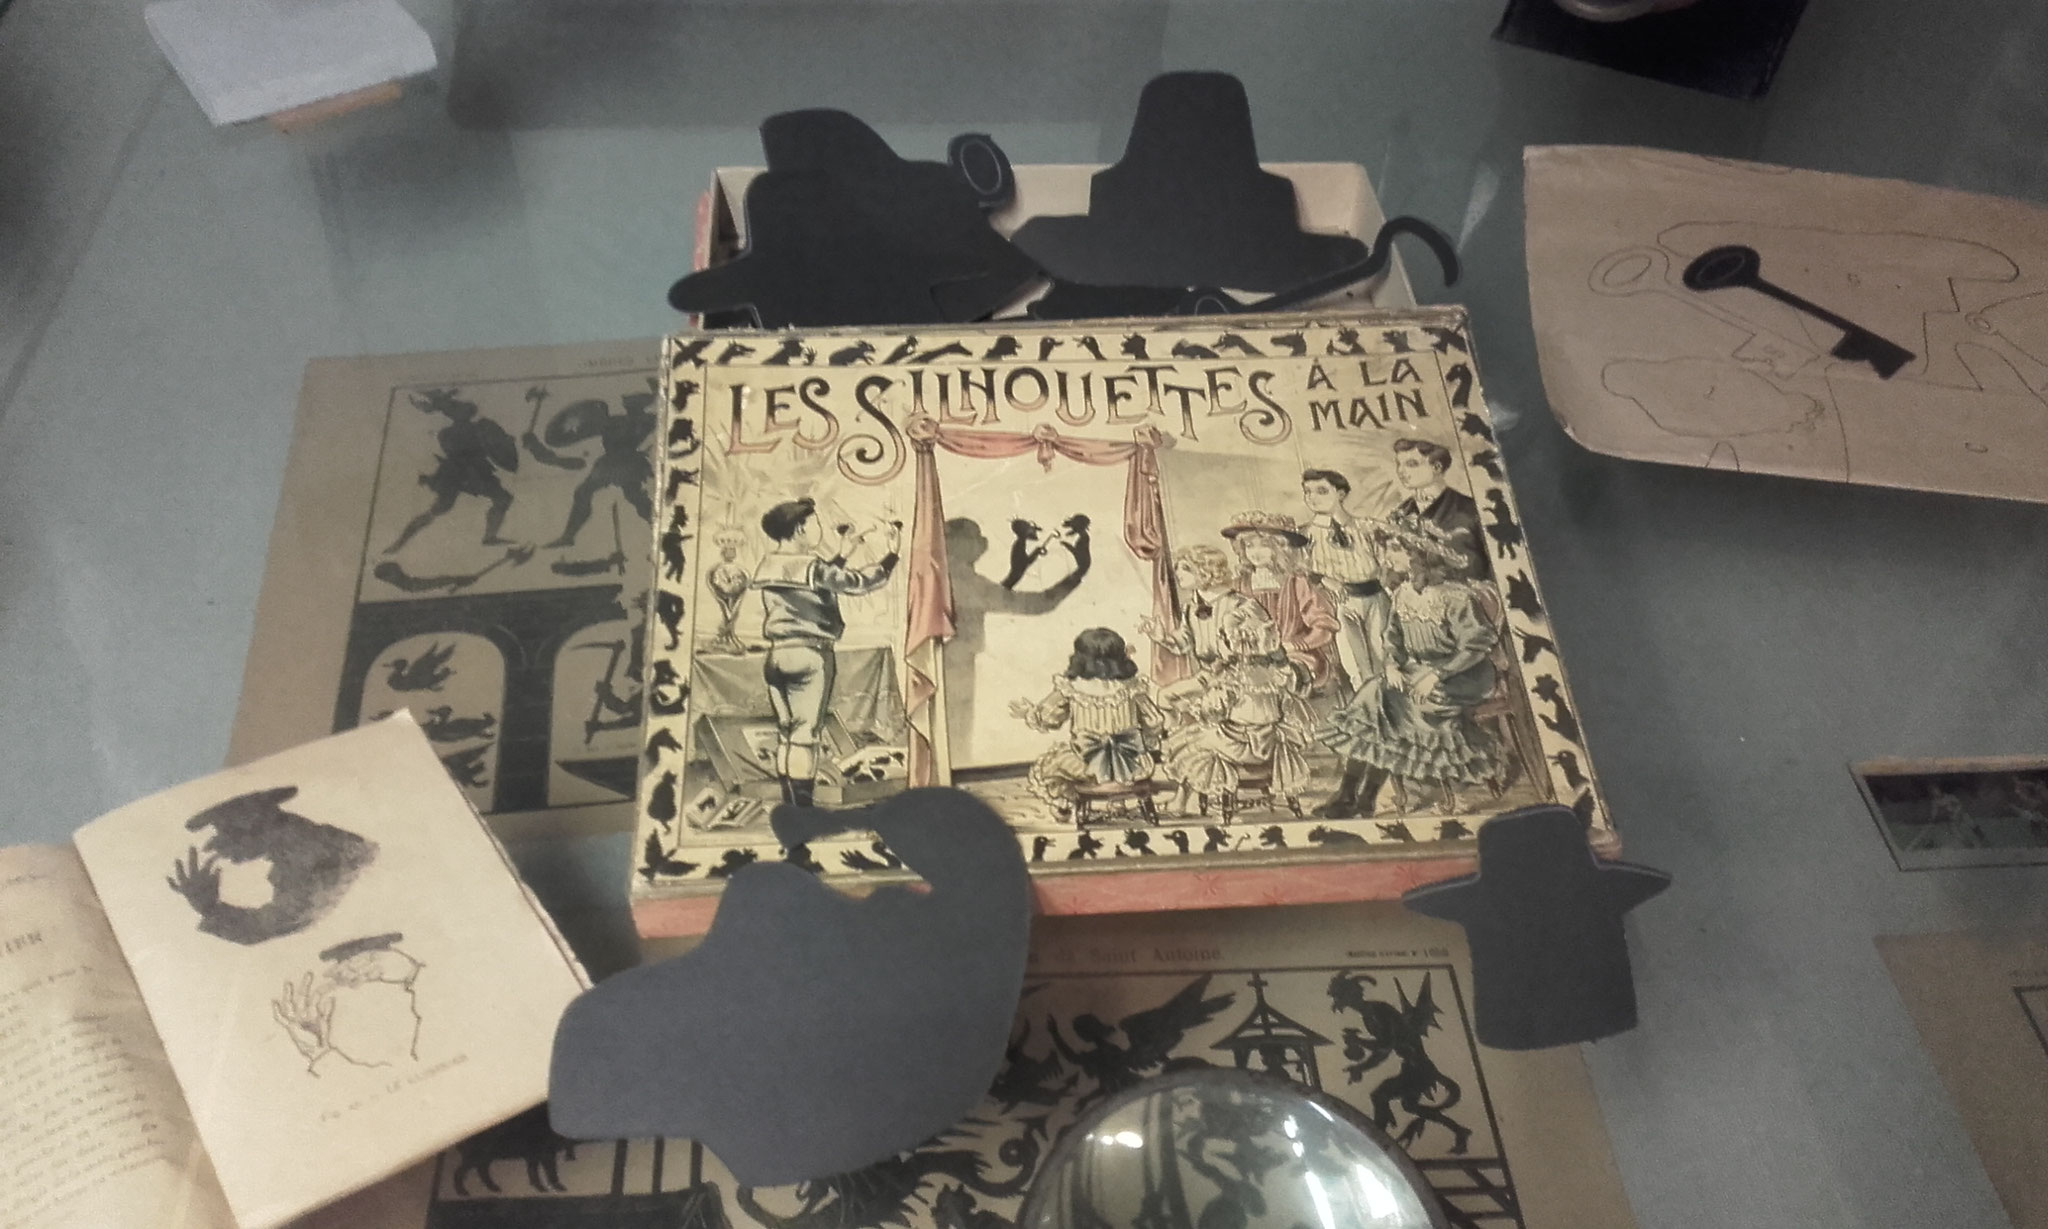 jeu d'ombres chinoises